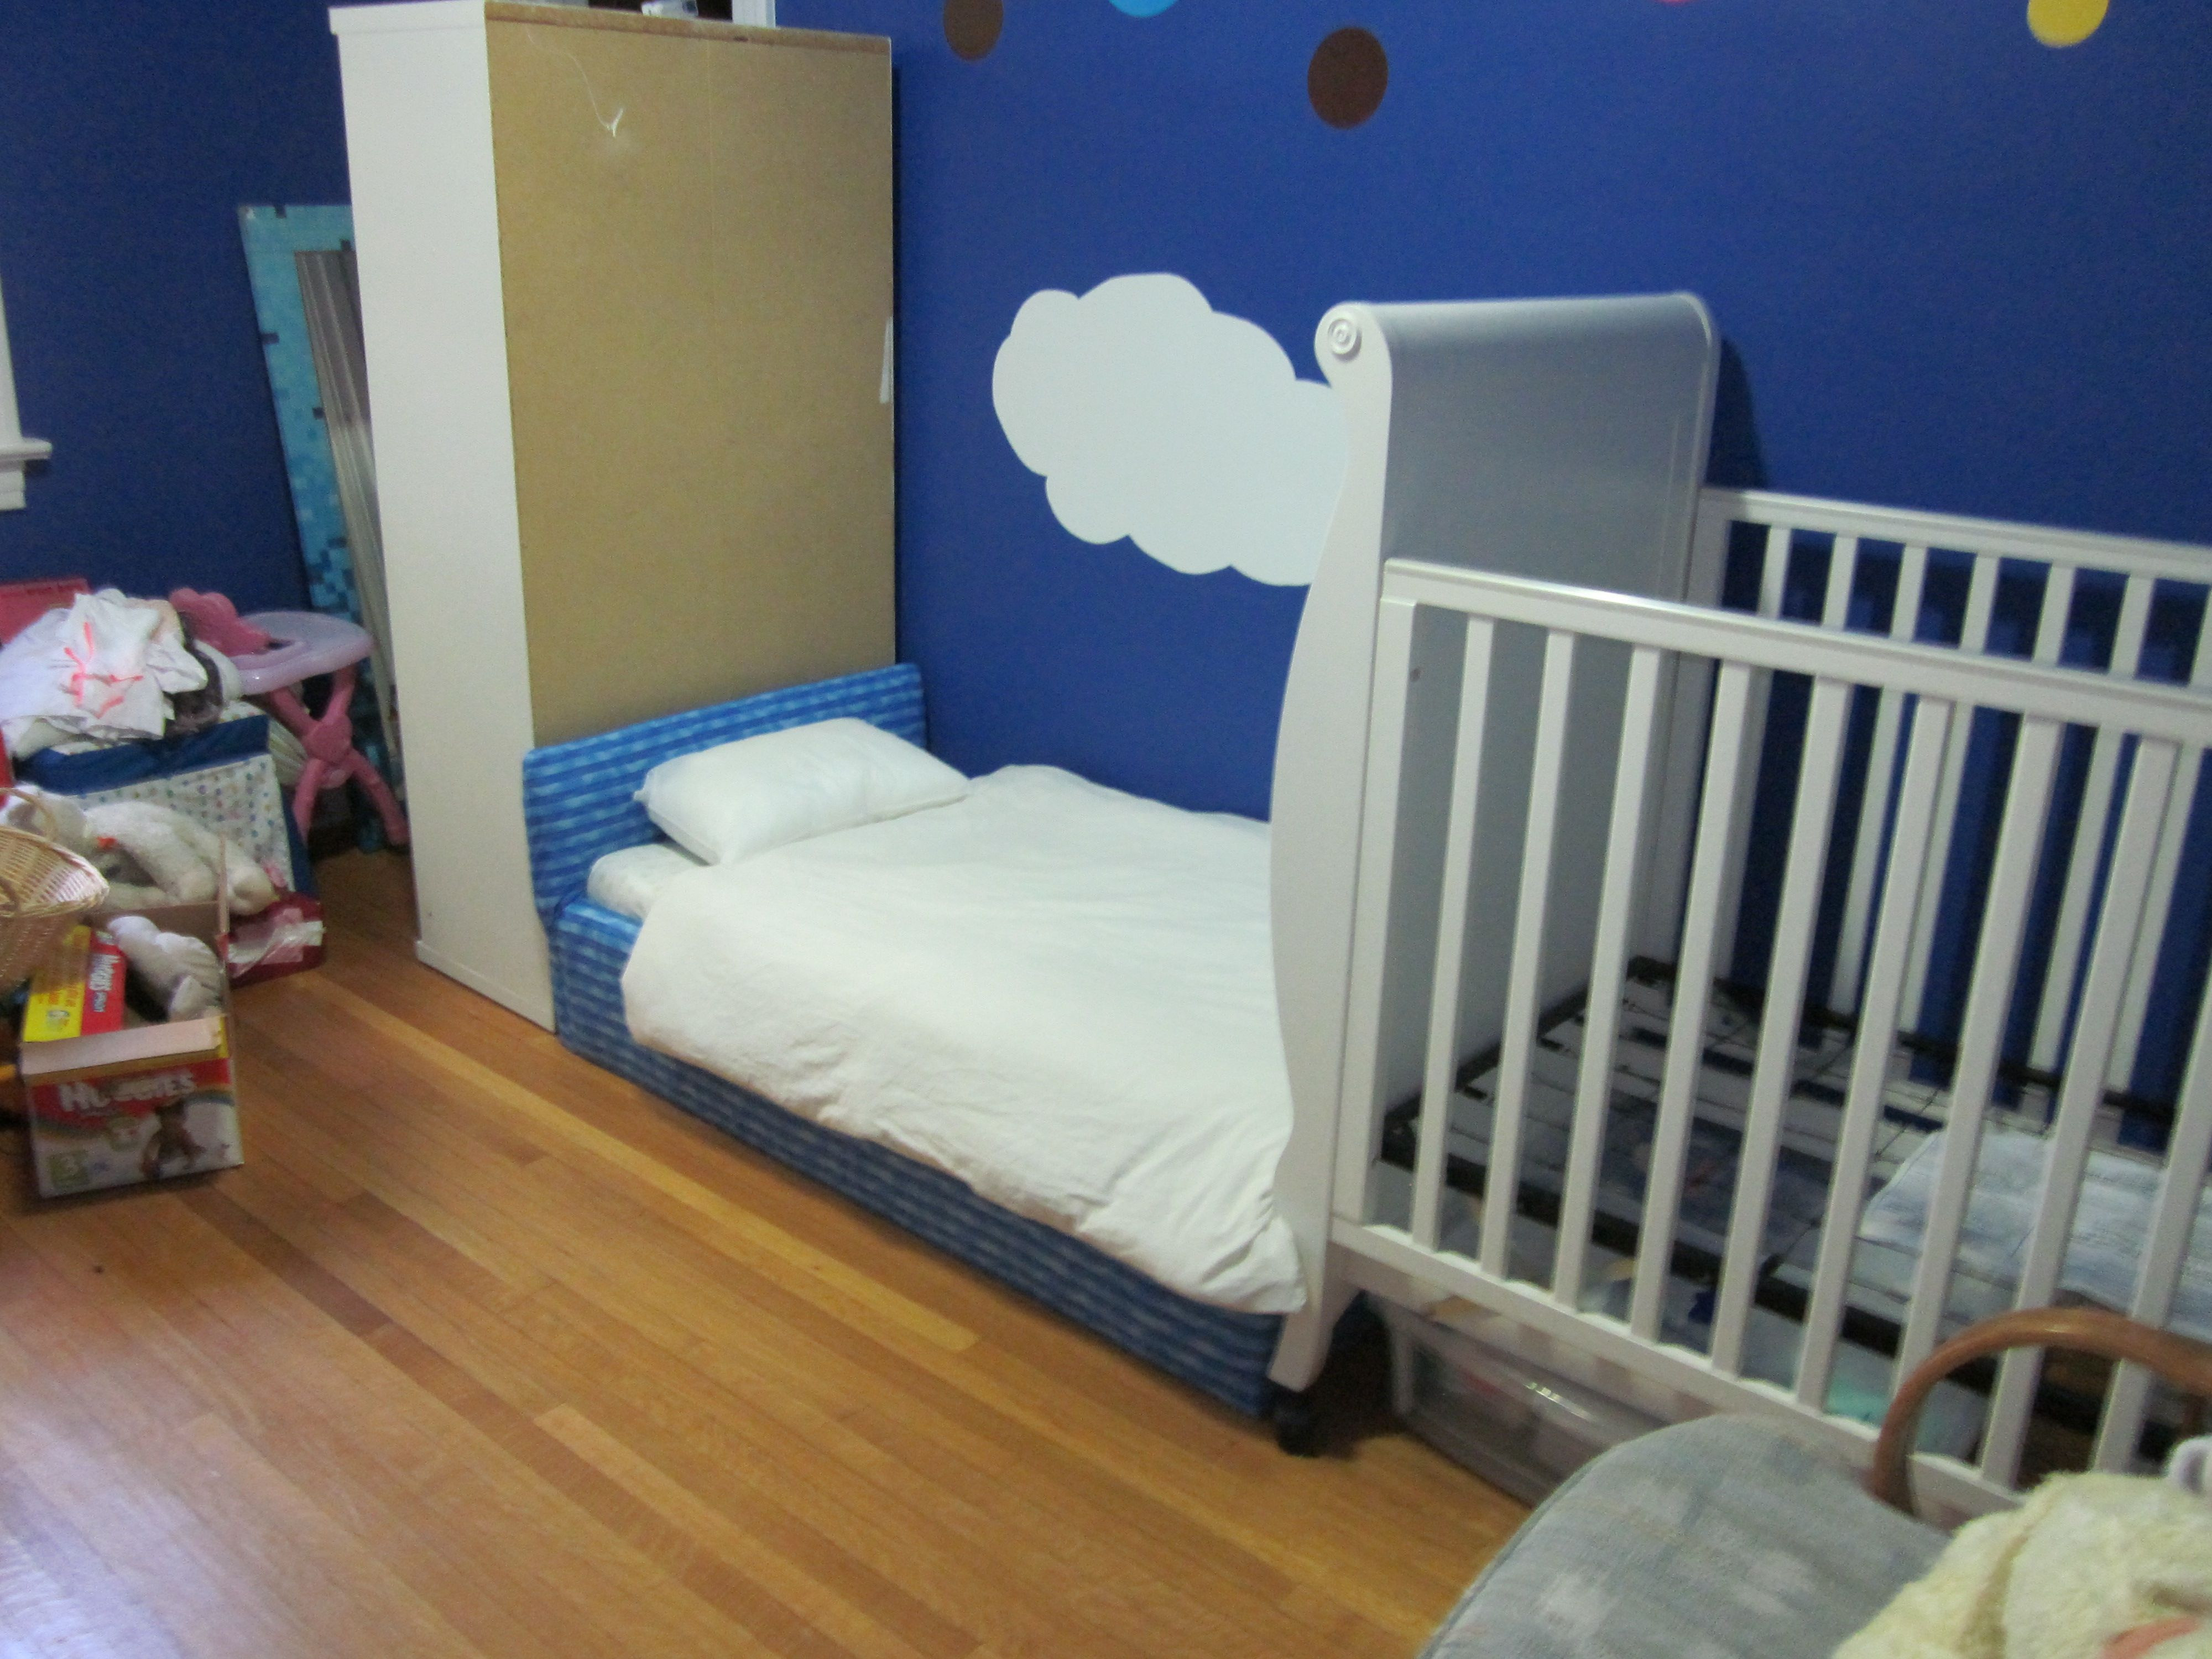 Best ideas about DIY Girls Beds . Save or Pin 10 Cool DIY Kids Beds Now.